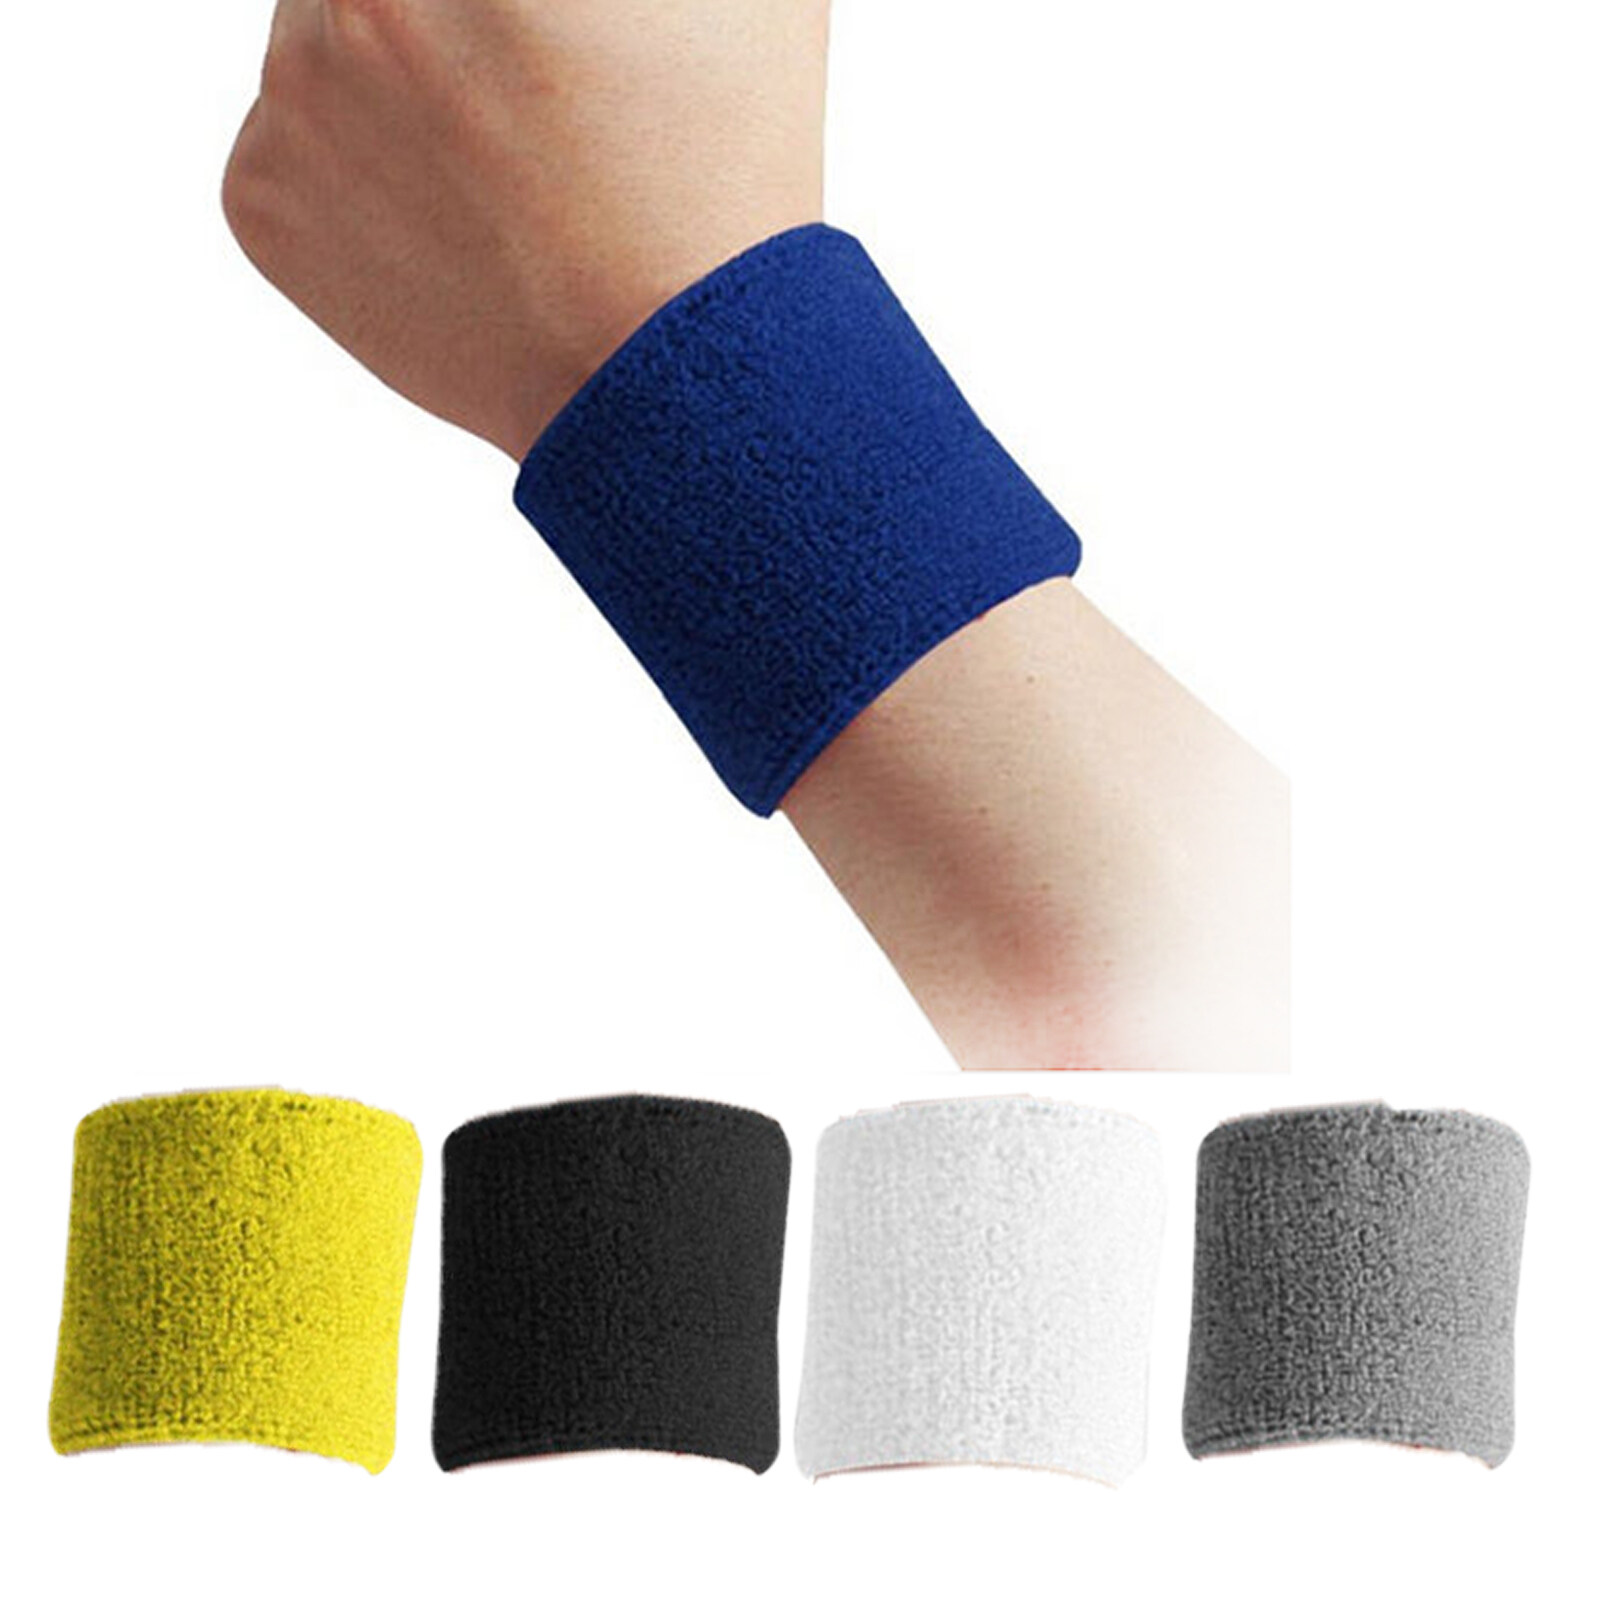 1PCS Cotton Protective Wristbands Sport Sweatband Hand Band Sweat Wrist Support Brace Wraps Gym Volleyball Basketball 15114826